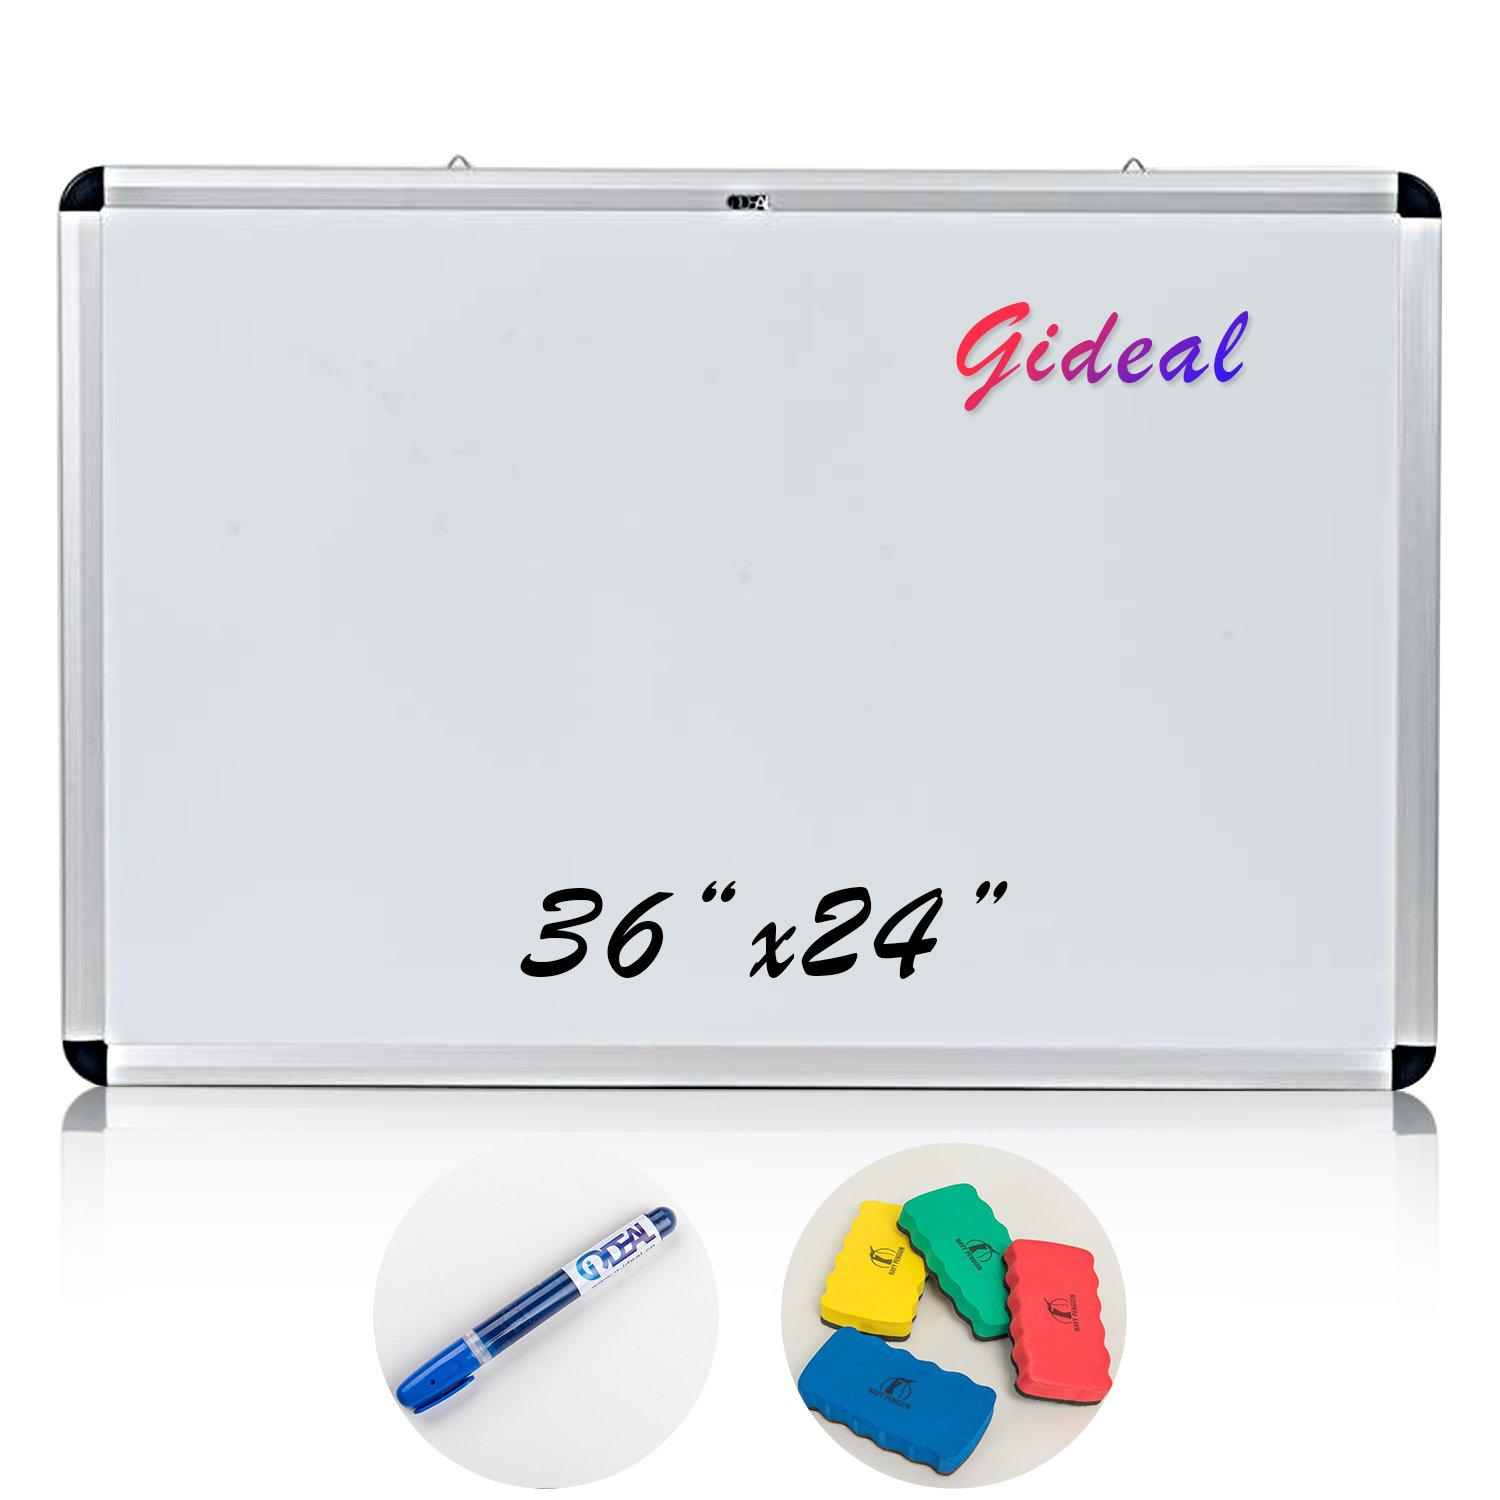 Gideal White Board 36 x 24 '' Dry Erase Board for Home School Office AC2